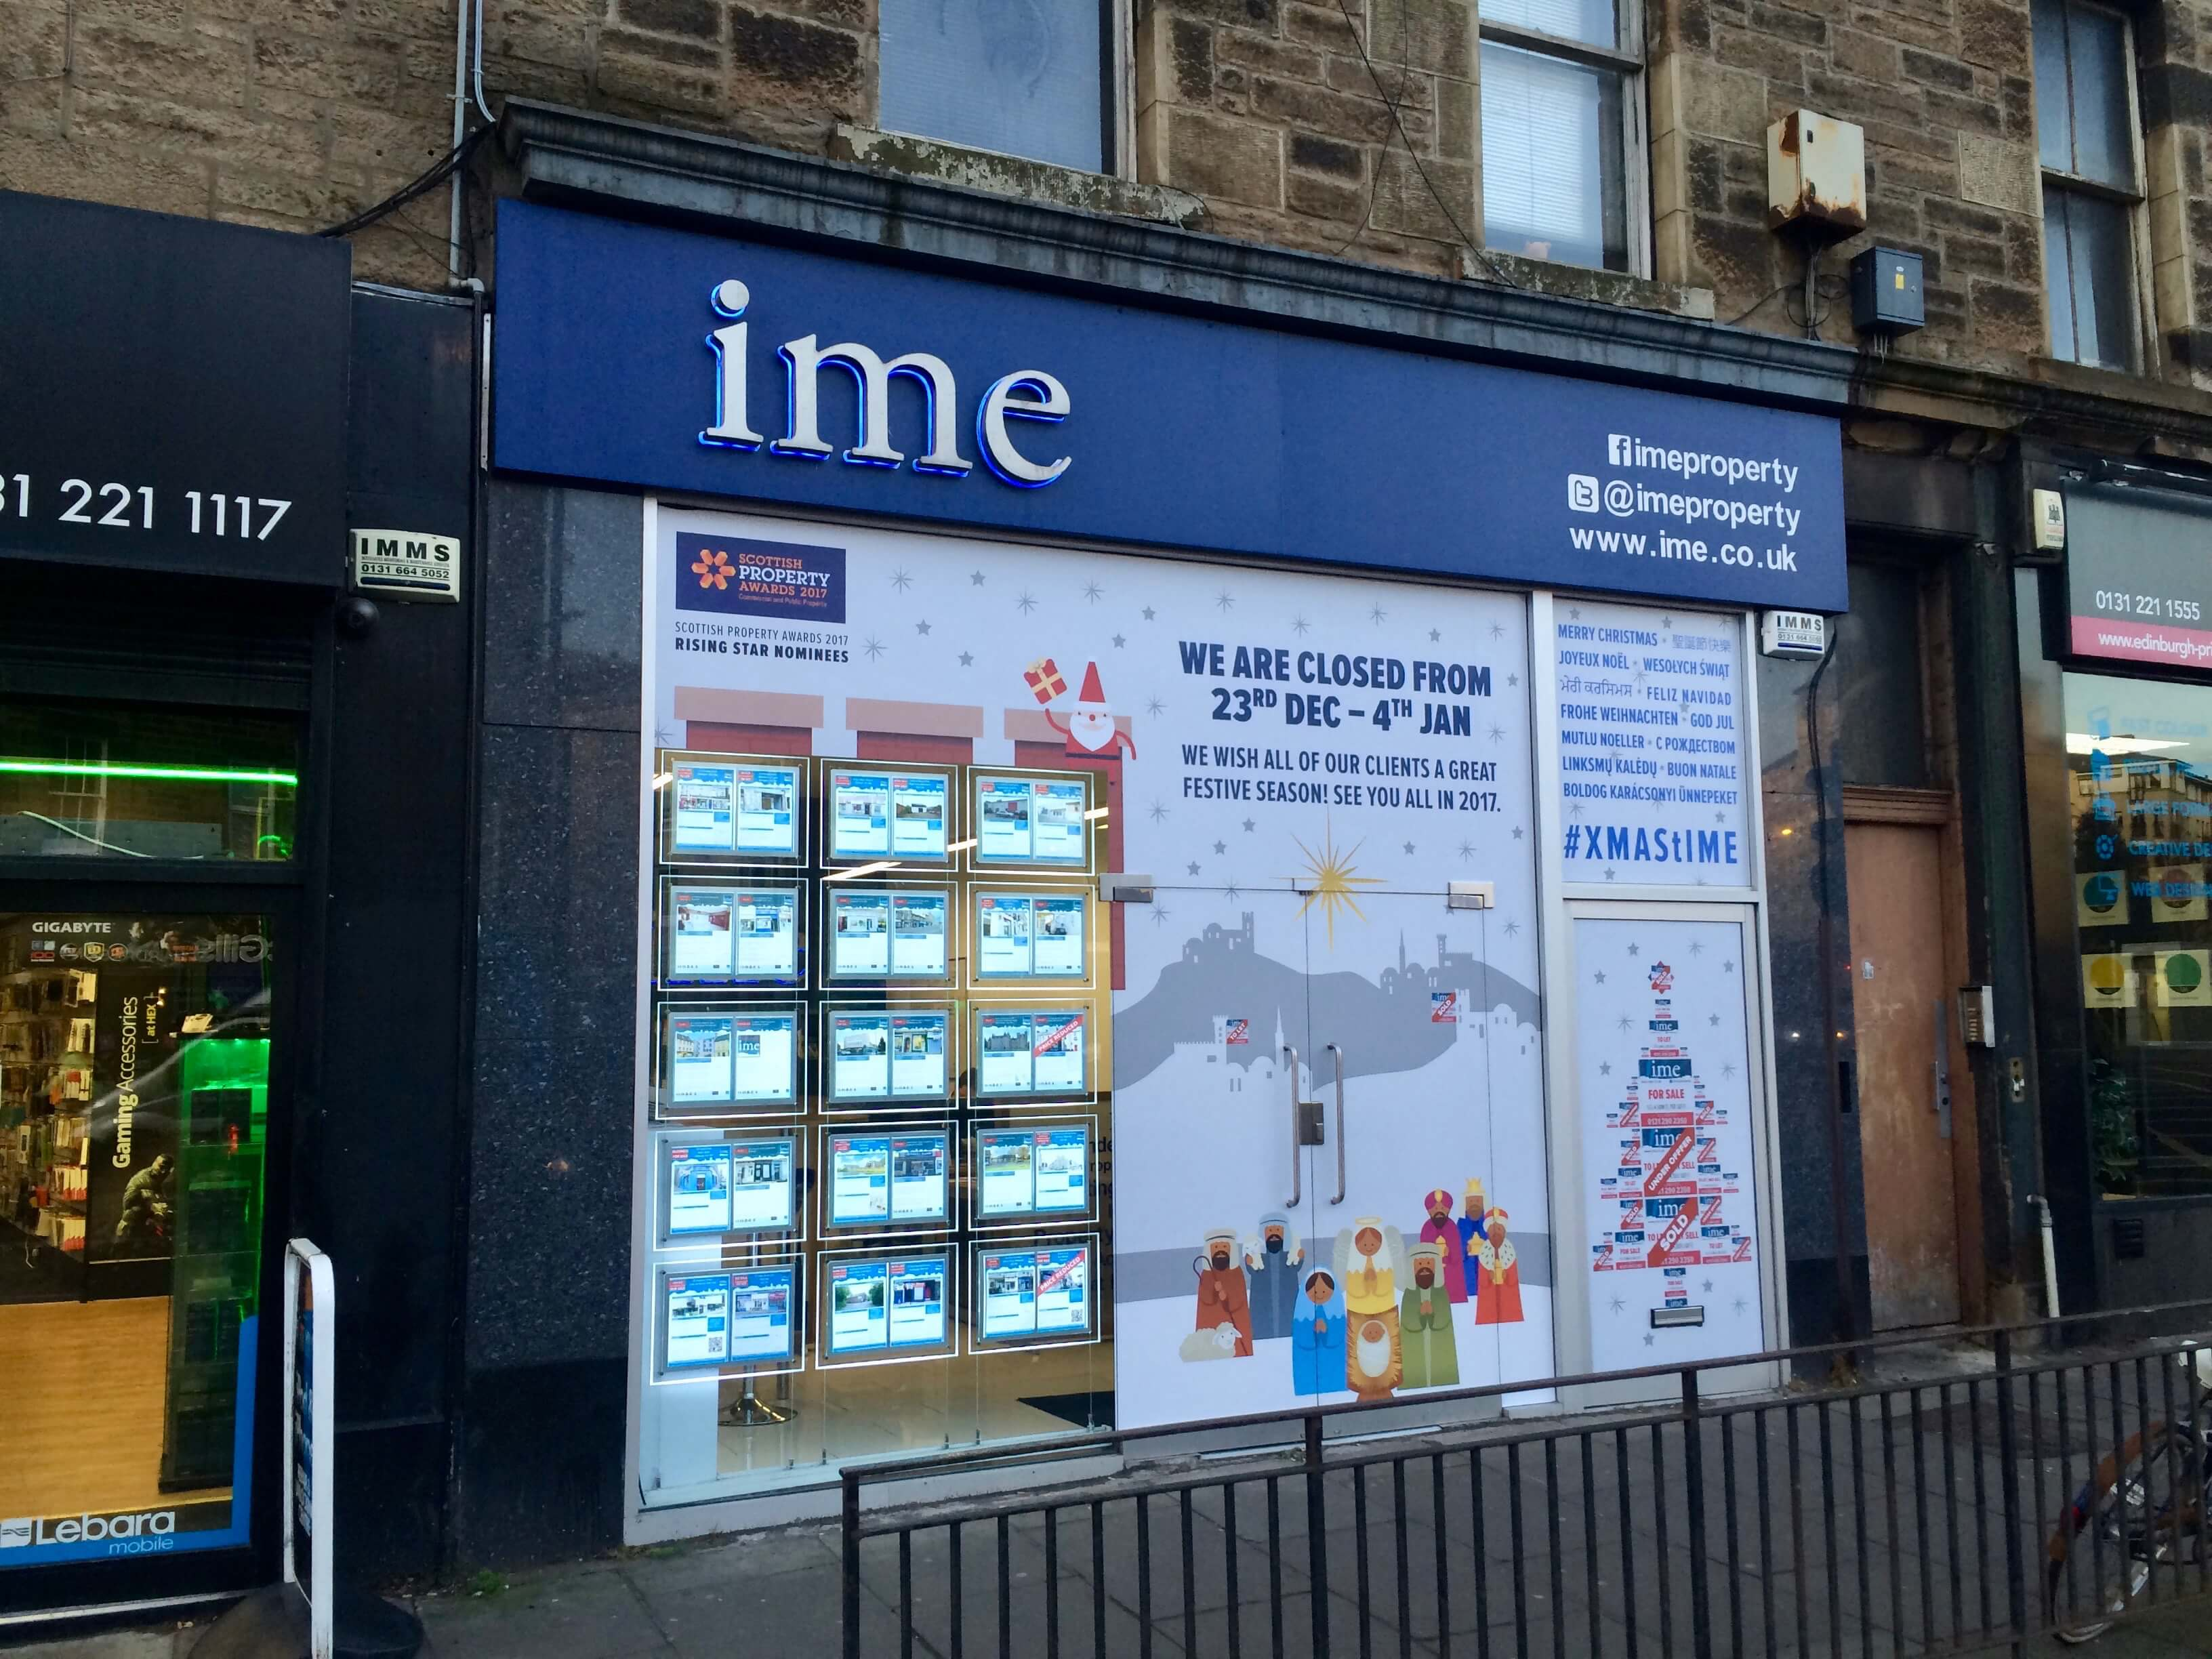 A Christmas Message from IME Property